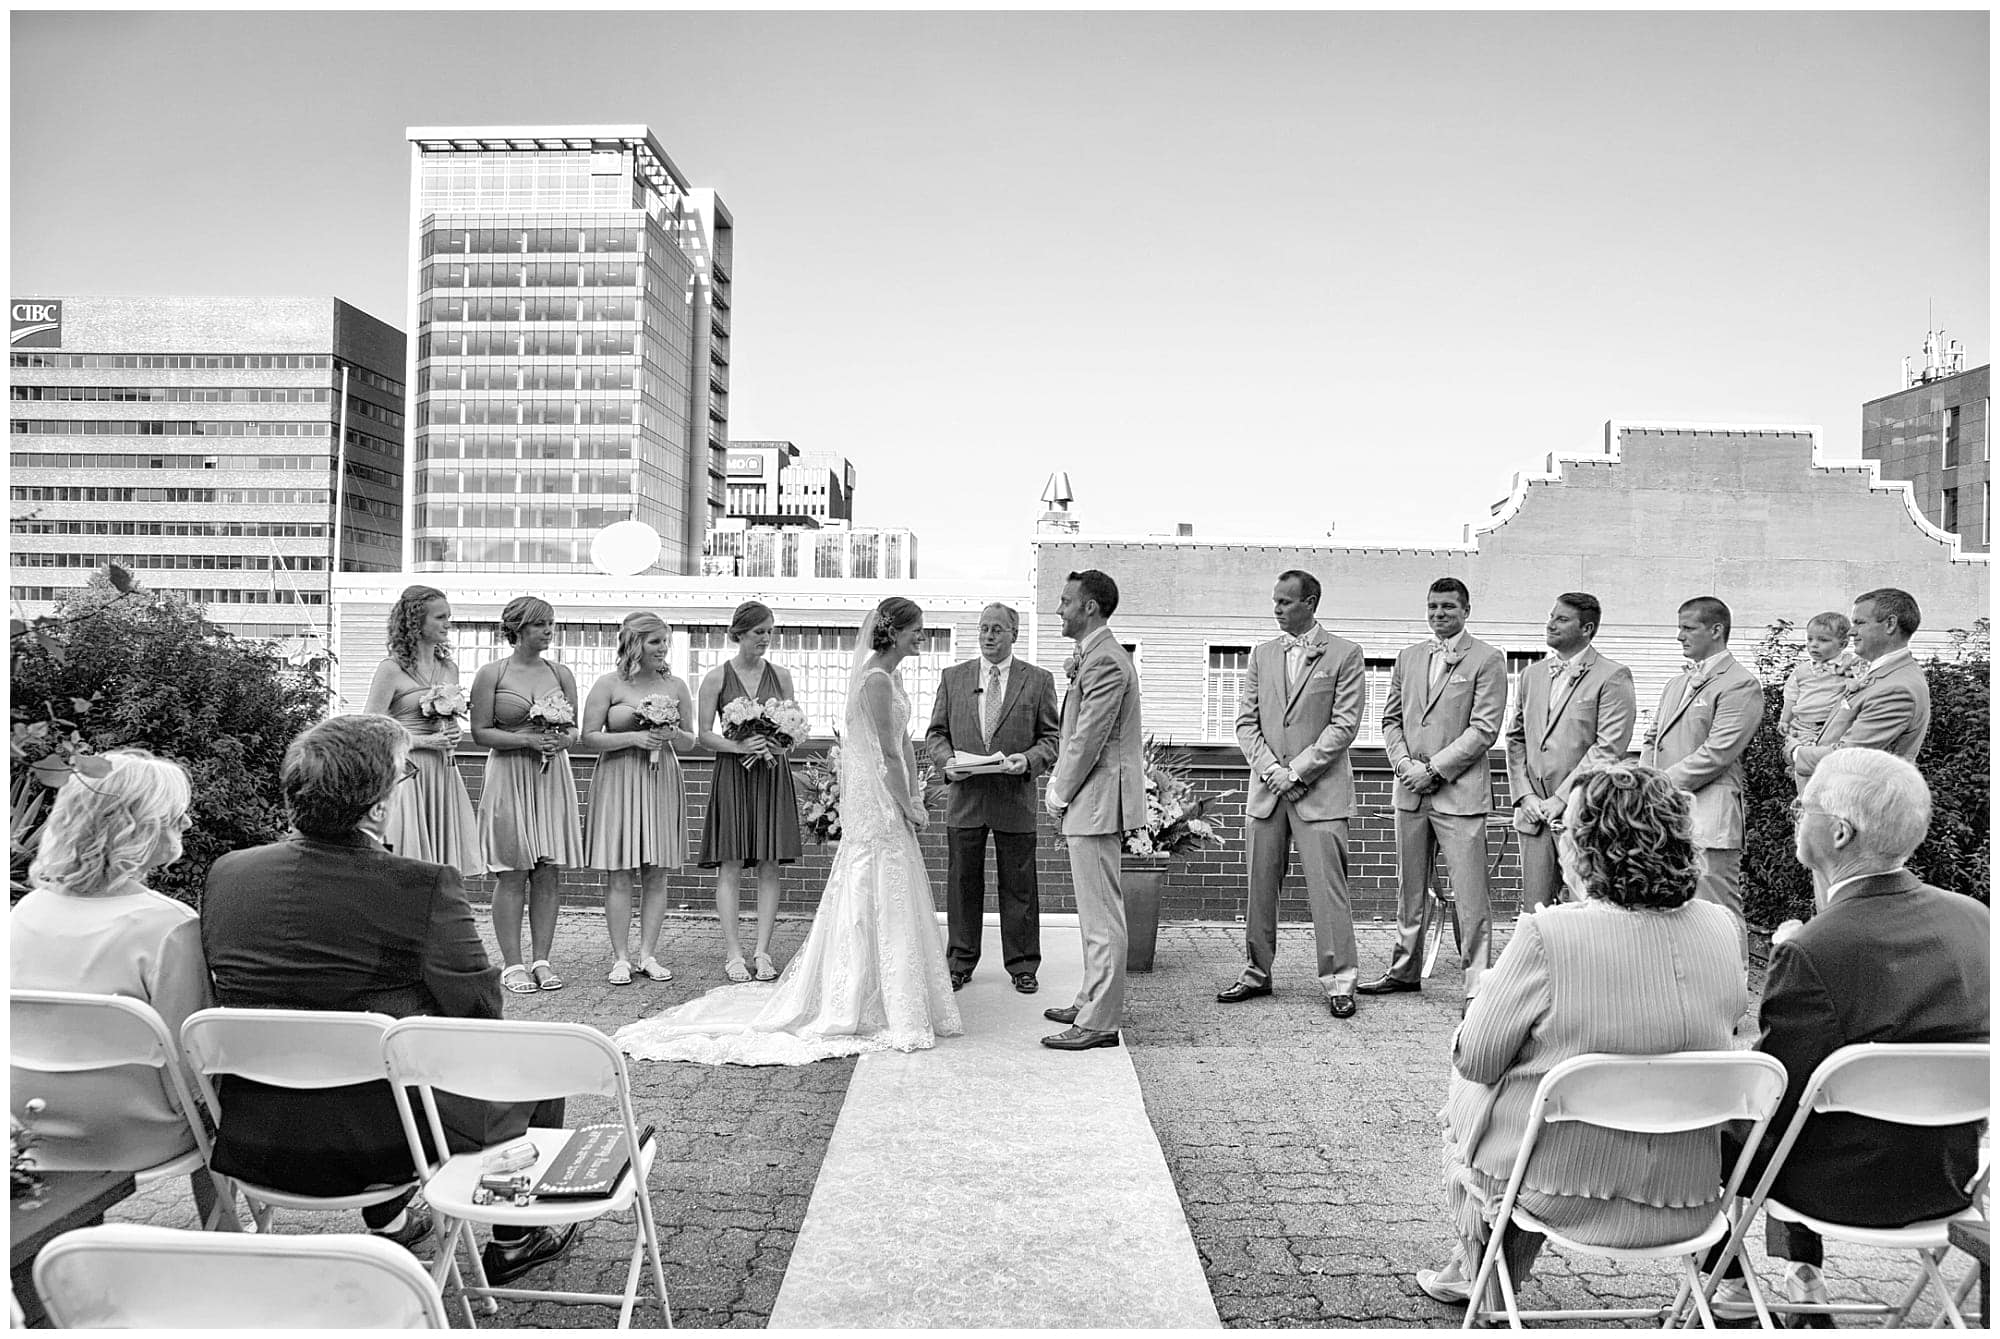 The bride and groom's wedding ceremony on the balcony at the Prince George Hotel in Halifax.